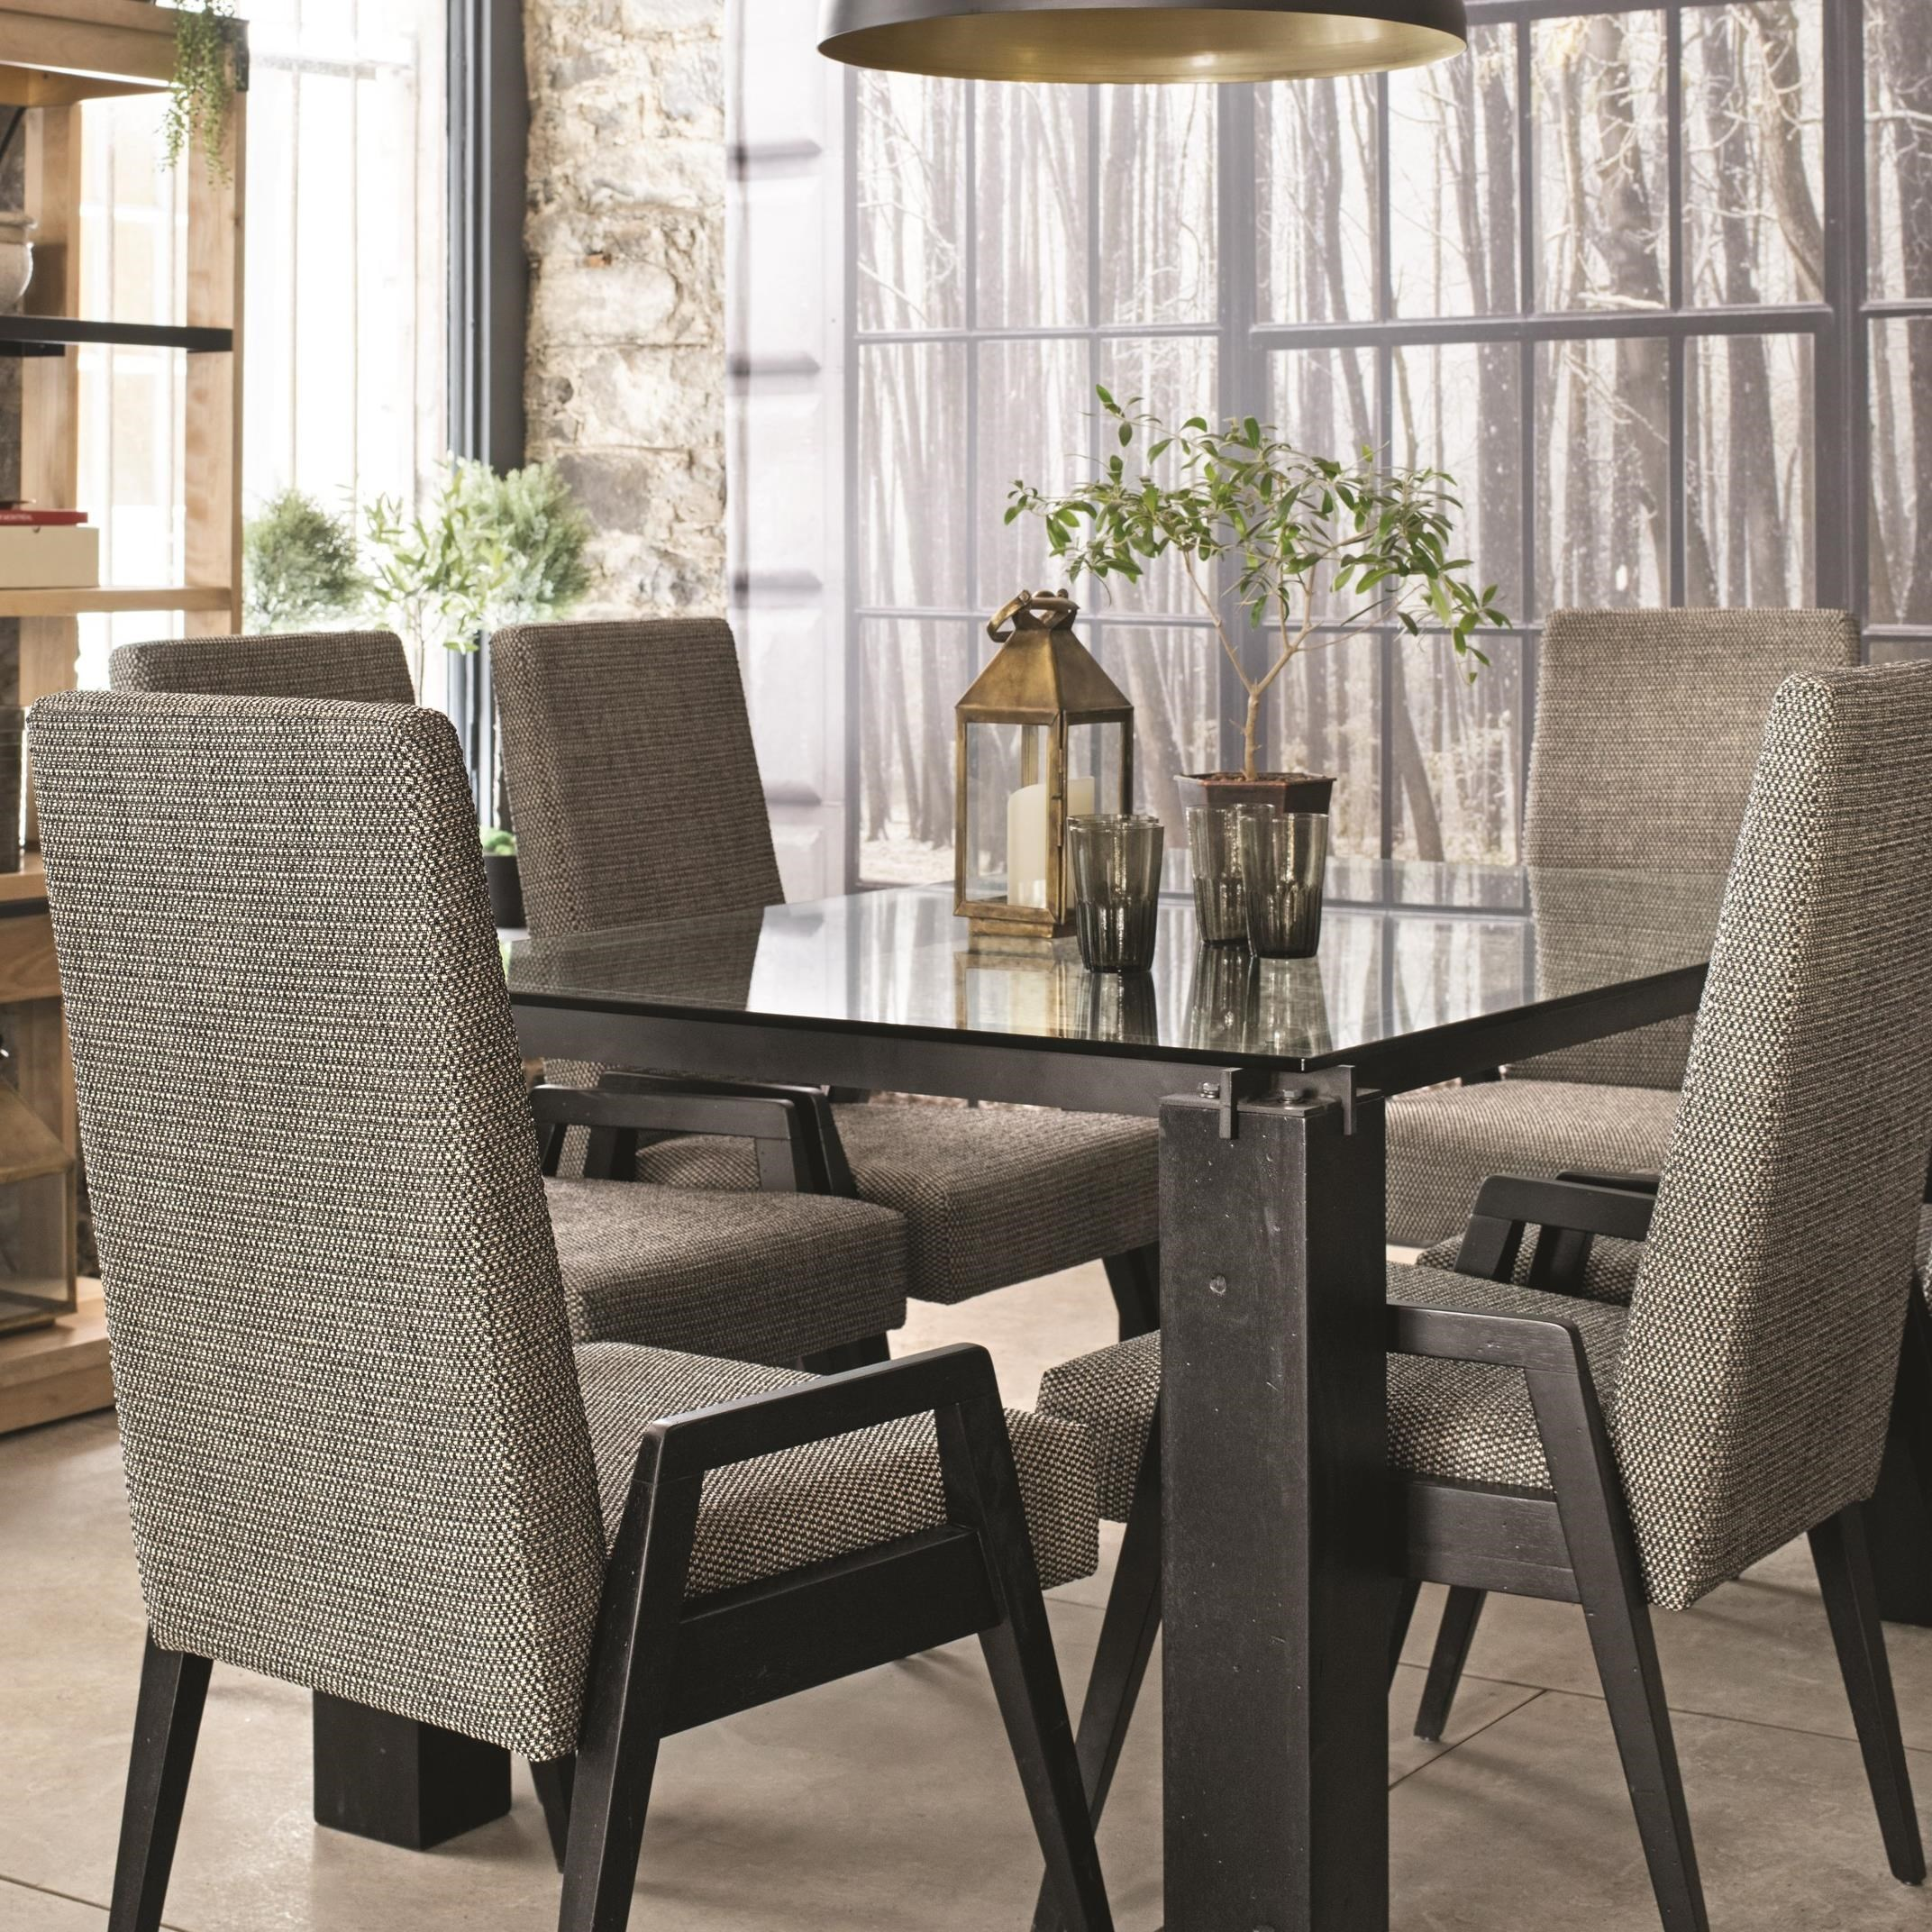 East Side Customizable Dining Table Set by Canadel at Turk Furniture